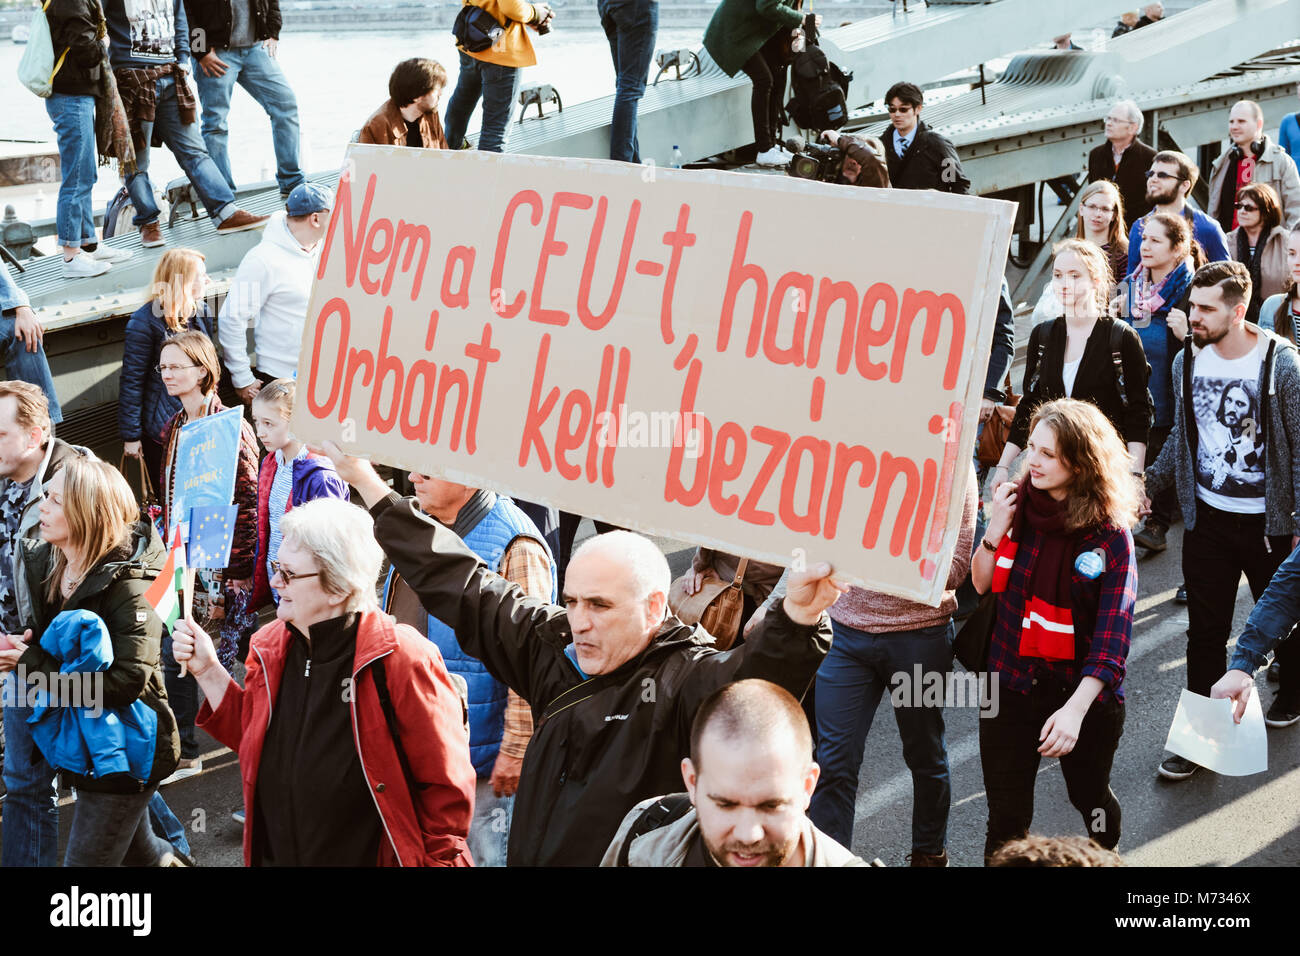 People protest against the bill that would undermine Central European University, a liberal graduate school of social - Stock Image